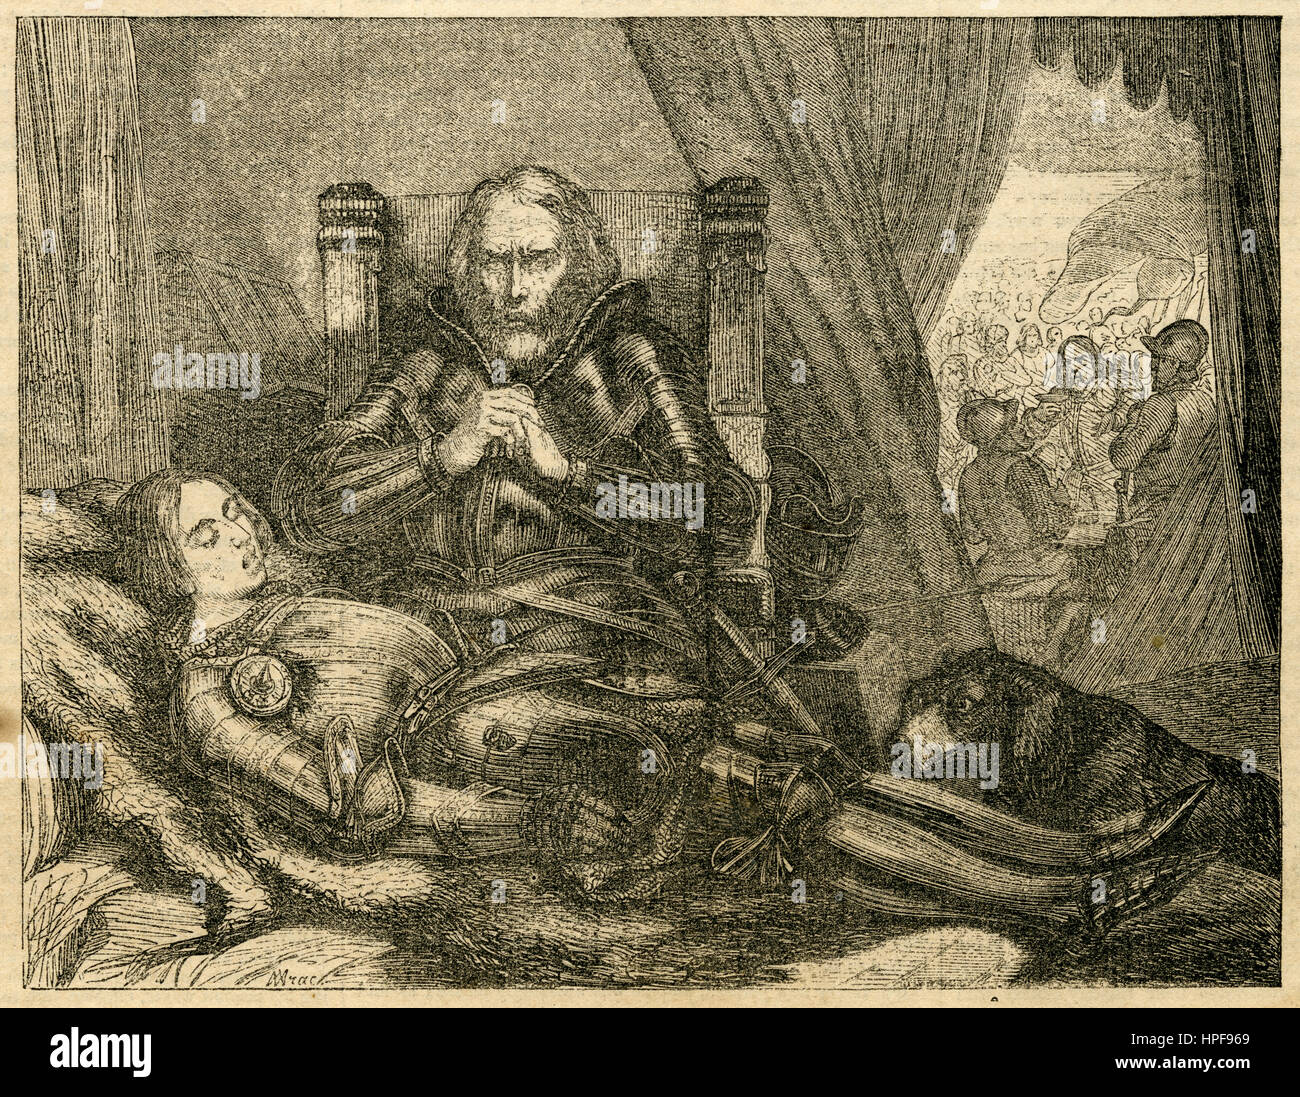 Antique 1854 engraving, 'Eberhard the Weeper' mourns his dead son. Eberhard II, called 'der Greiner' - Stock Image